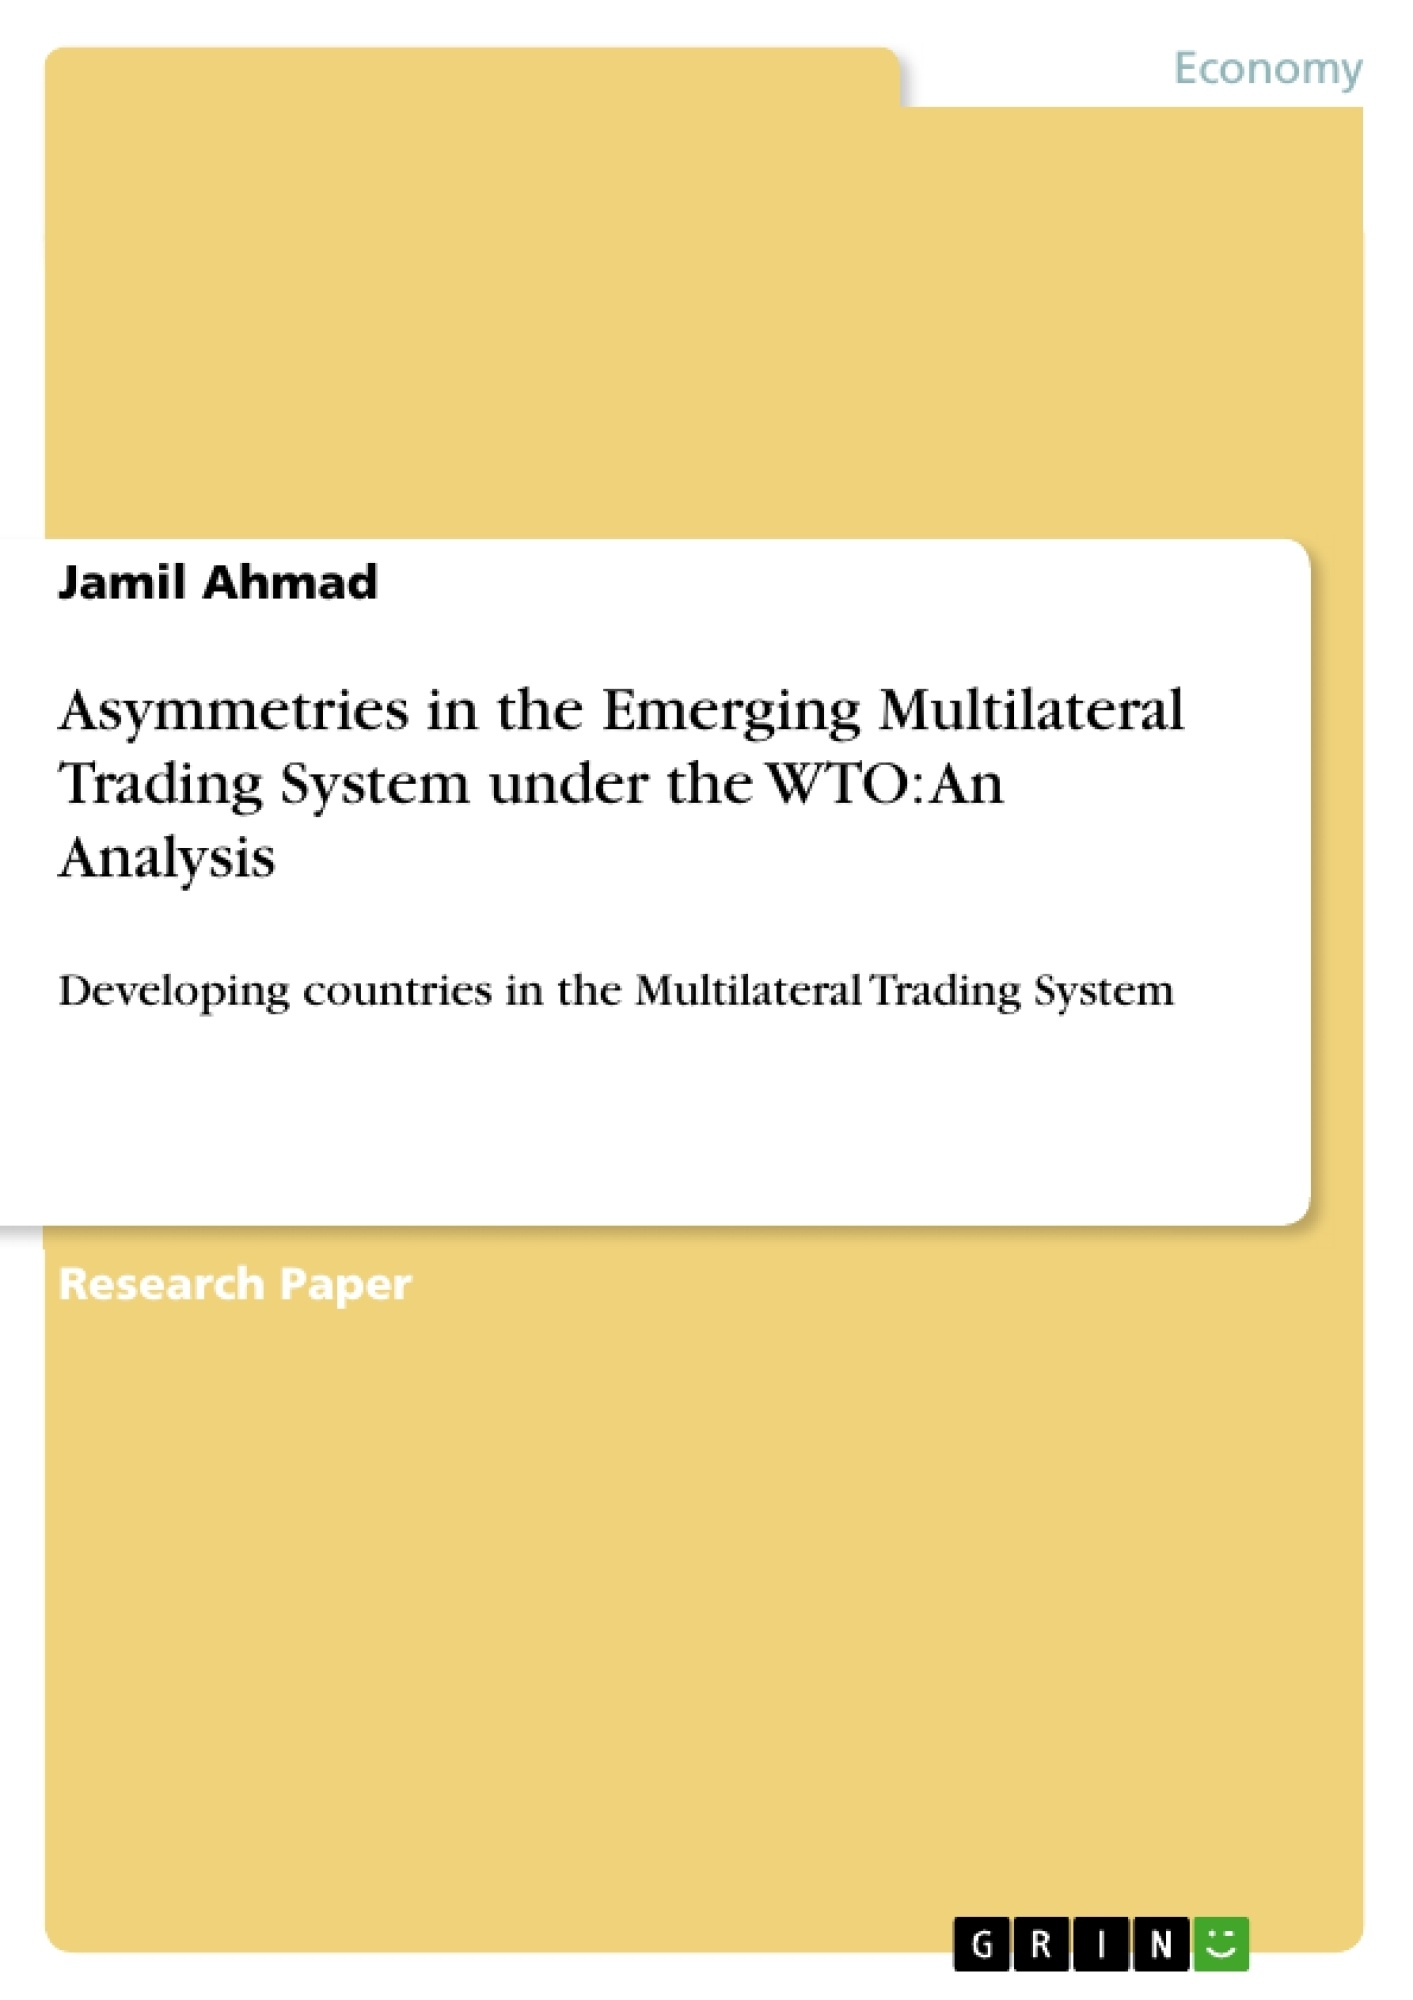 Title: Asymmetries in the Emerging Multilateral Trading System under the WTO: An Analysis